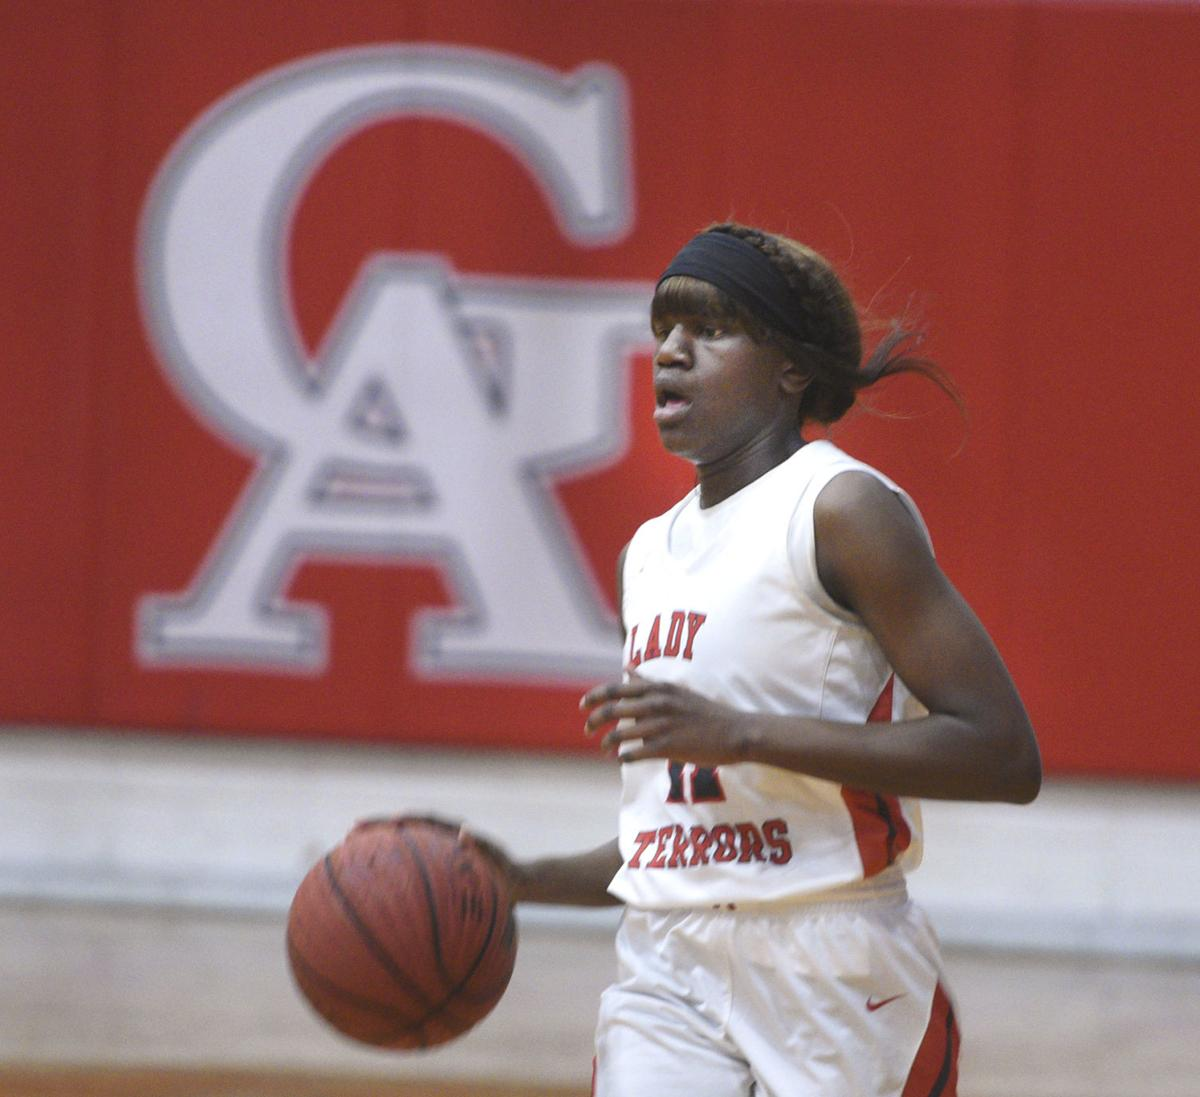 021619_ga evans girls basketball 9